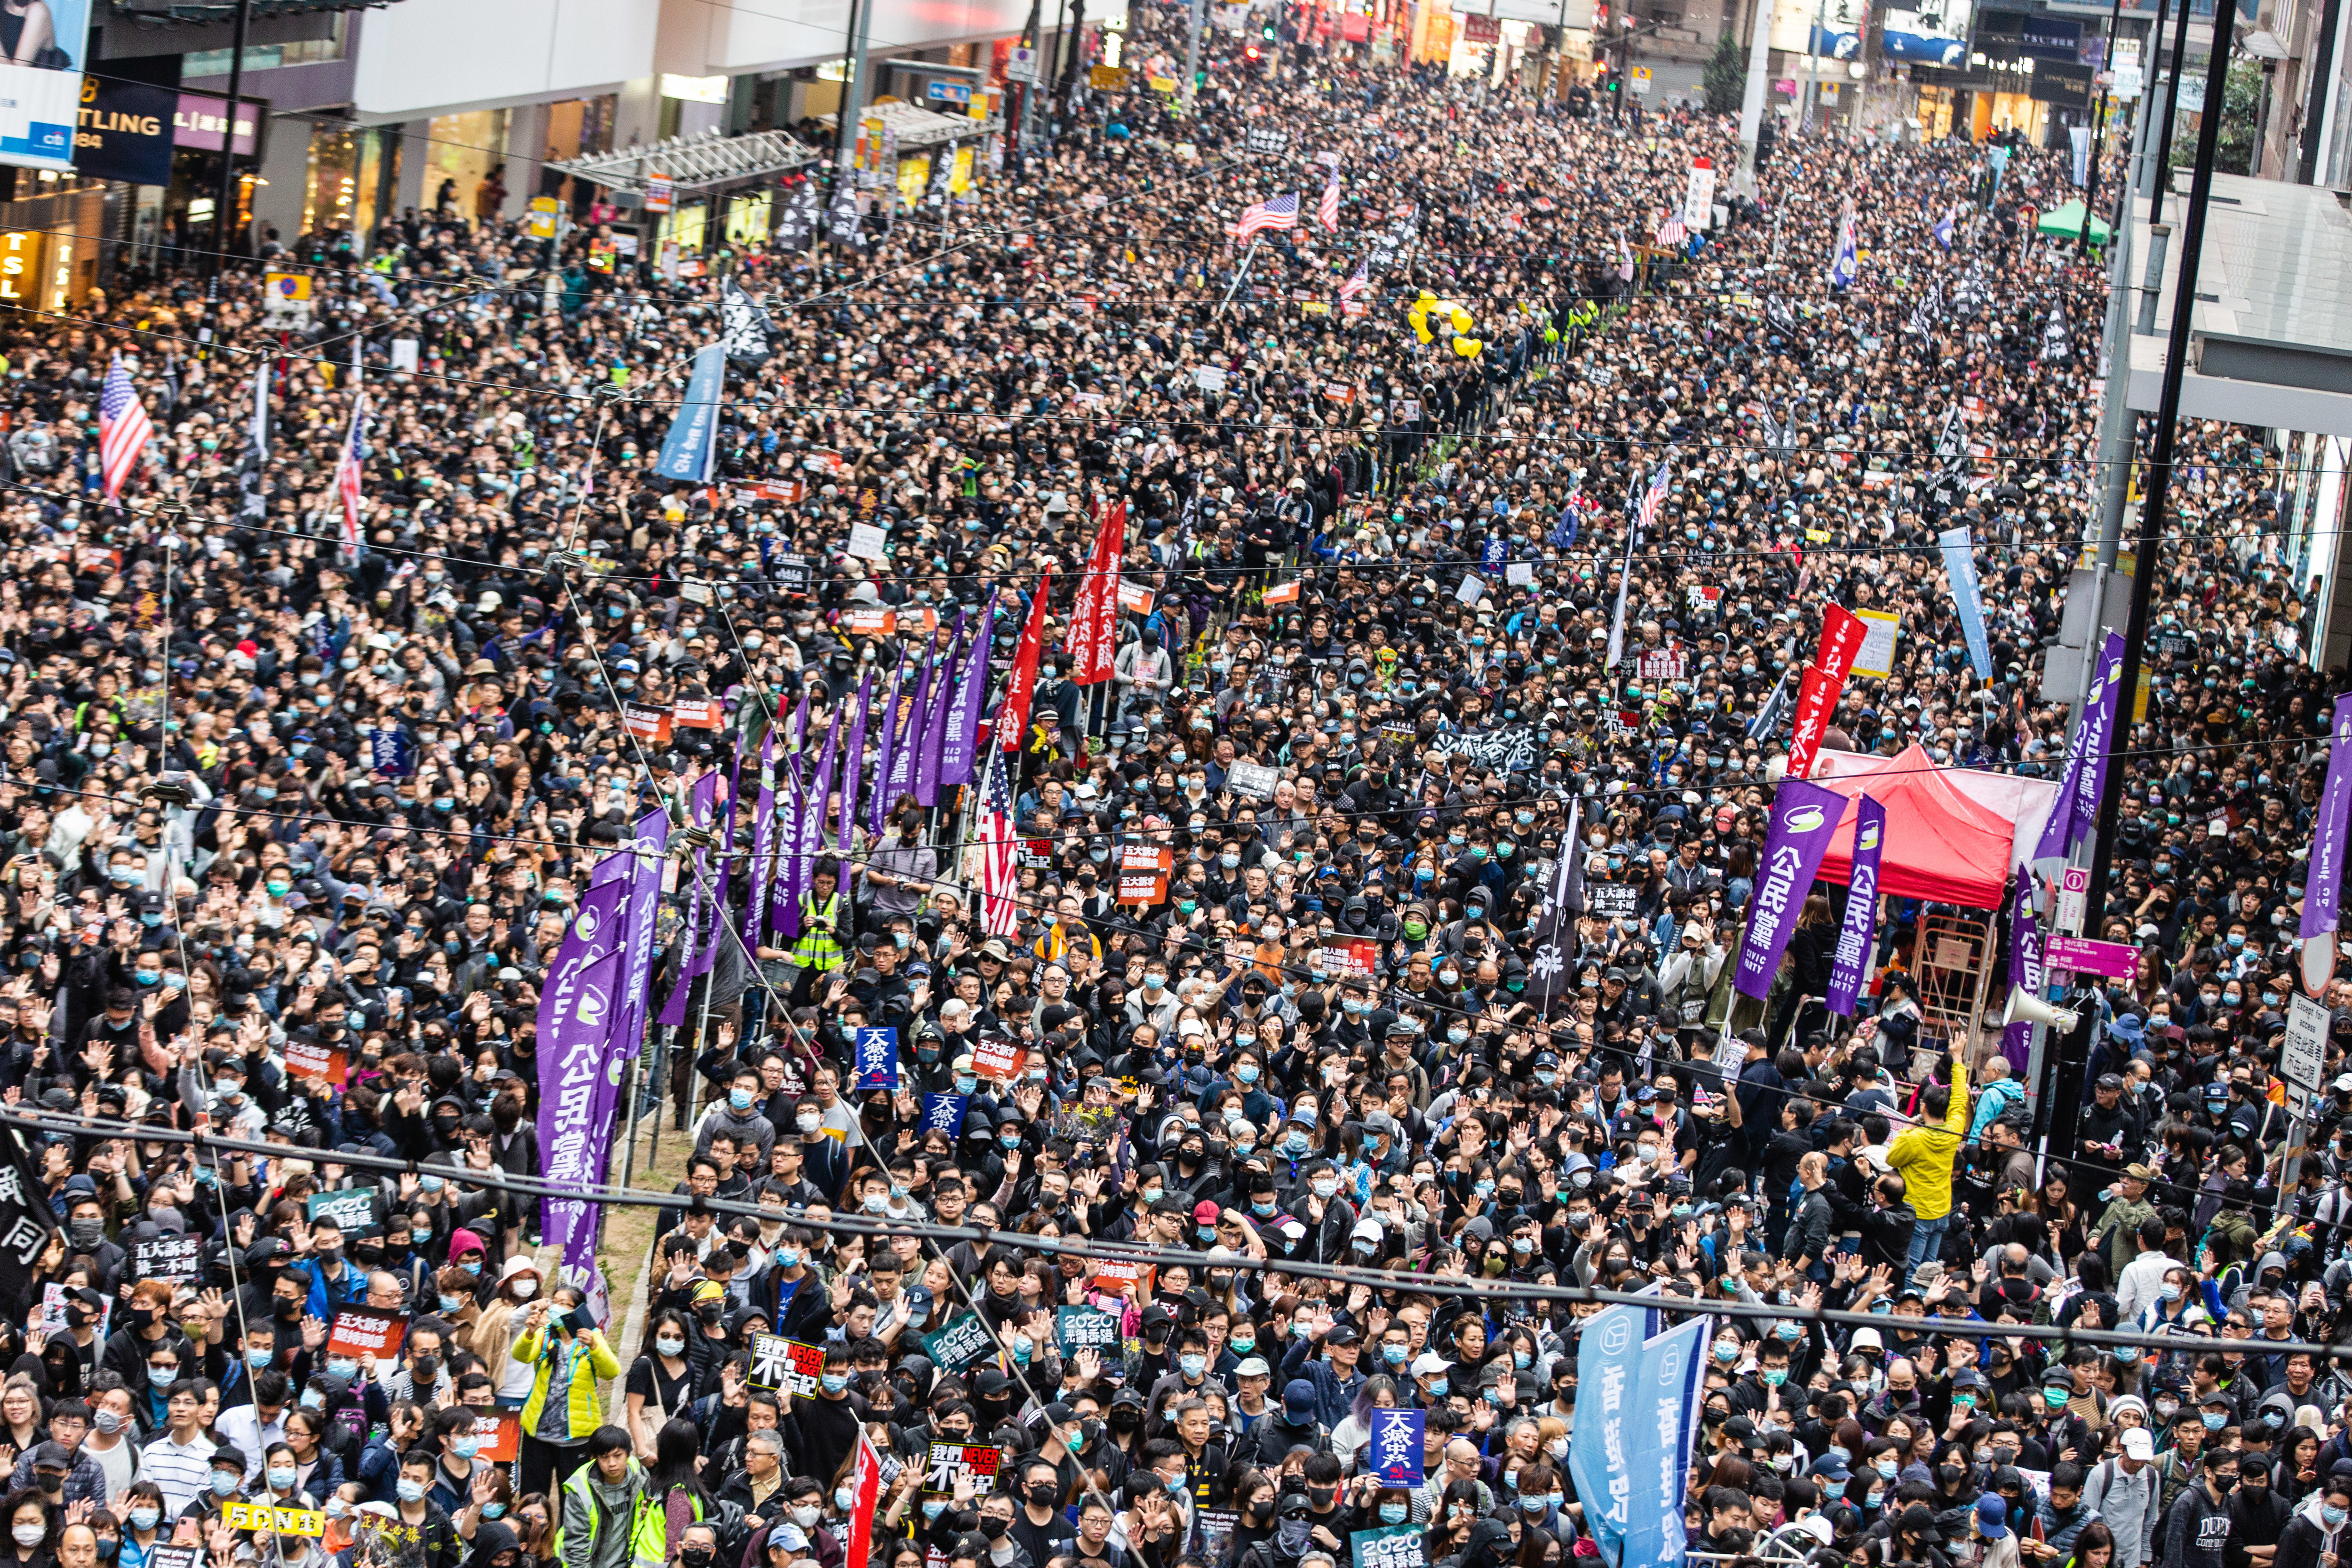 Crowds of protesters marching on the streets of Hong Kong...